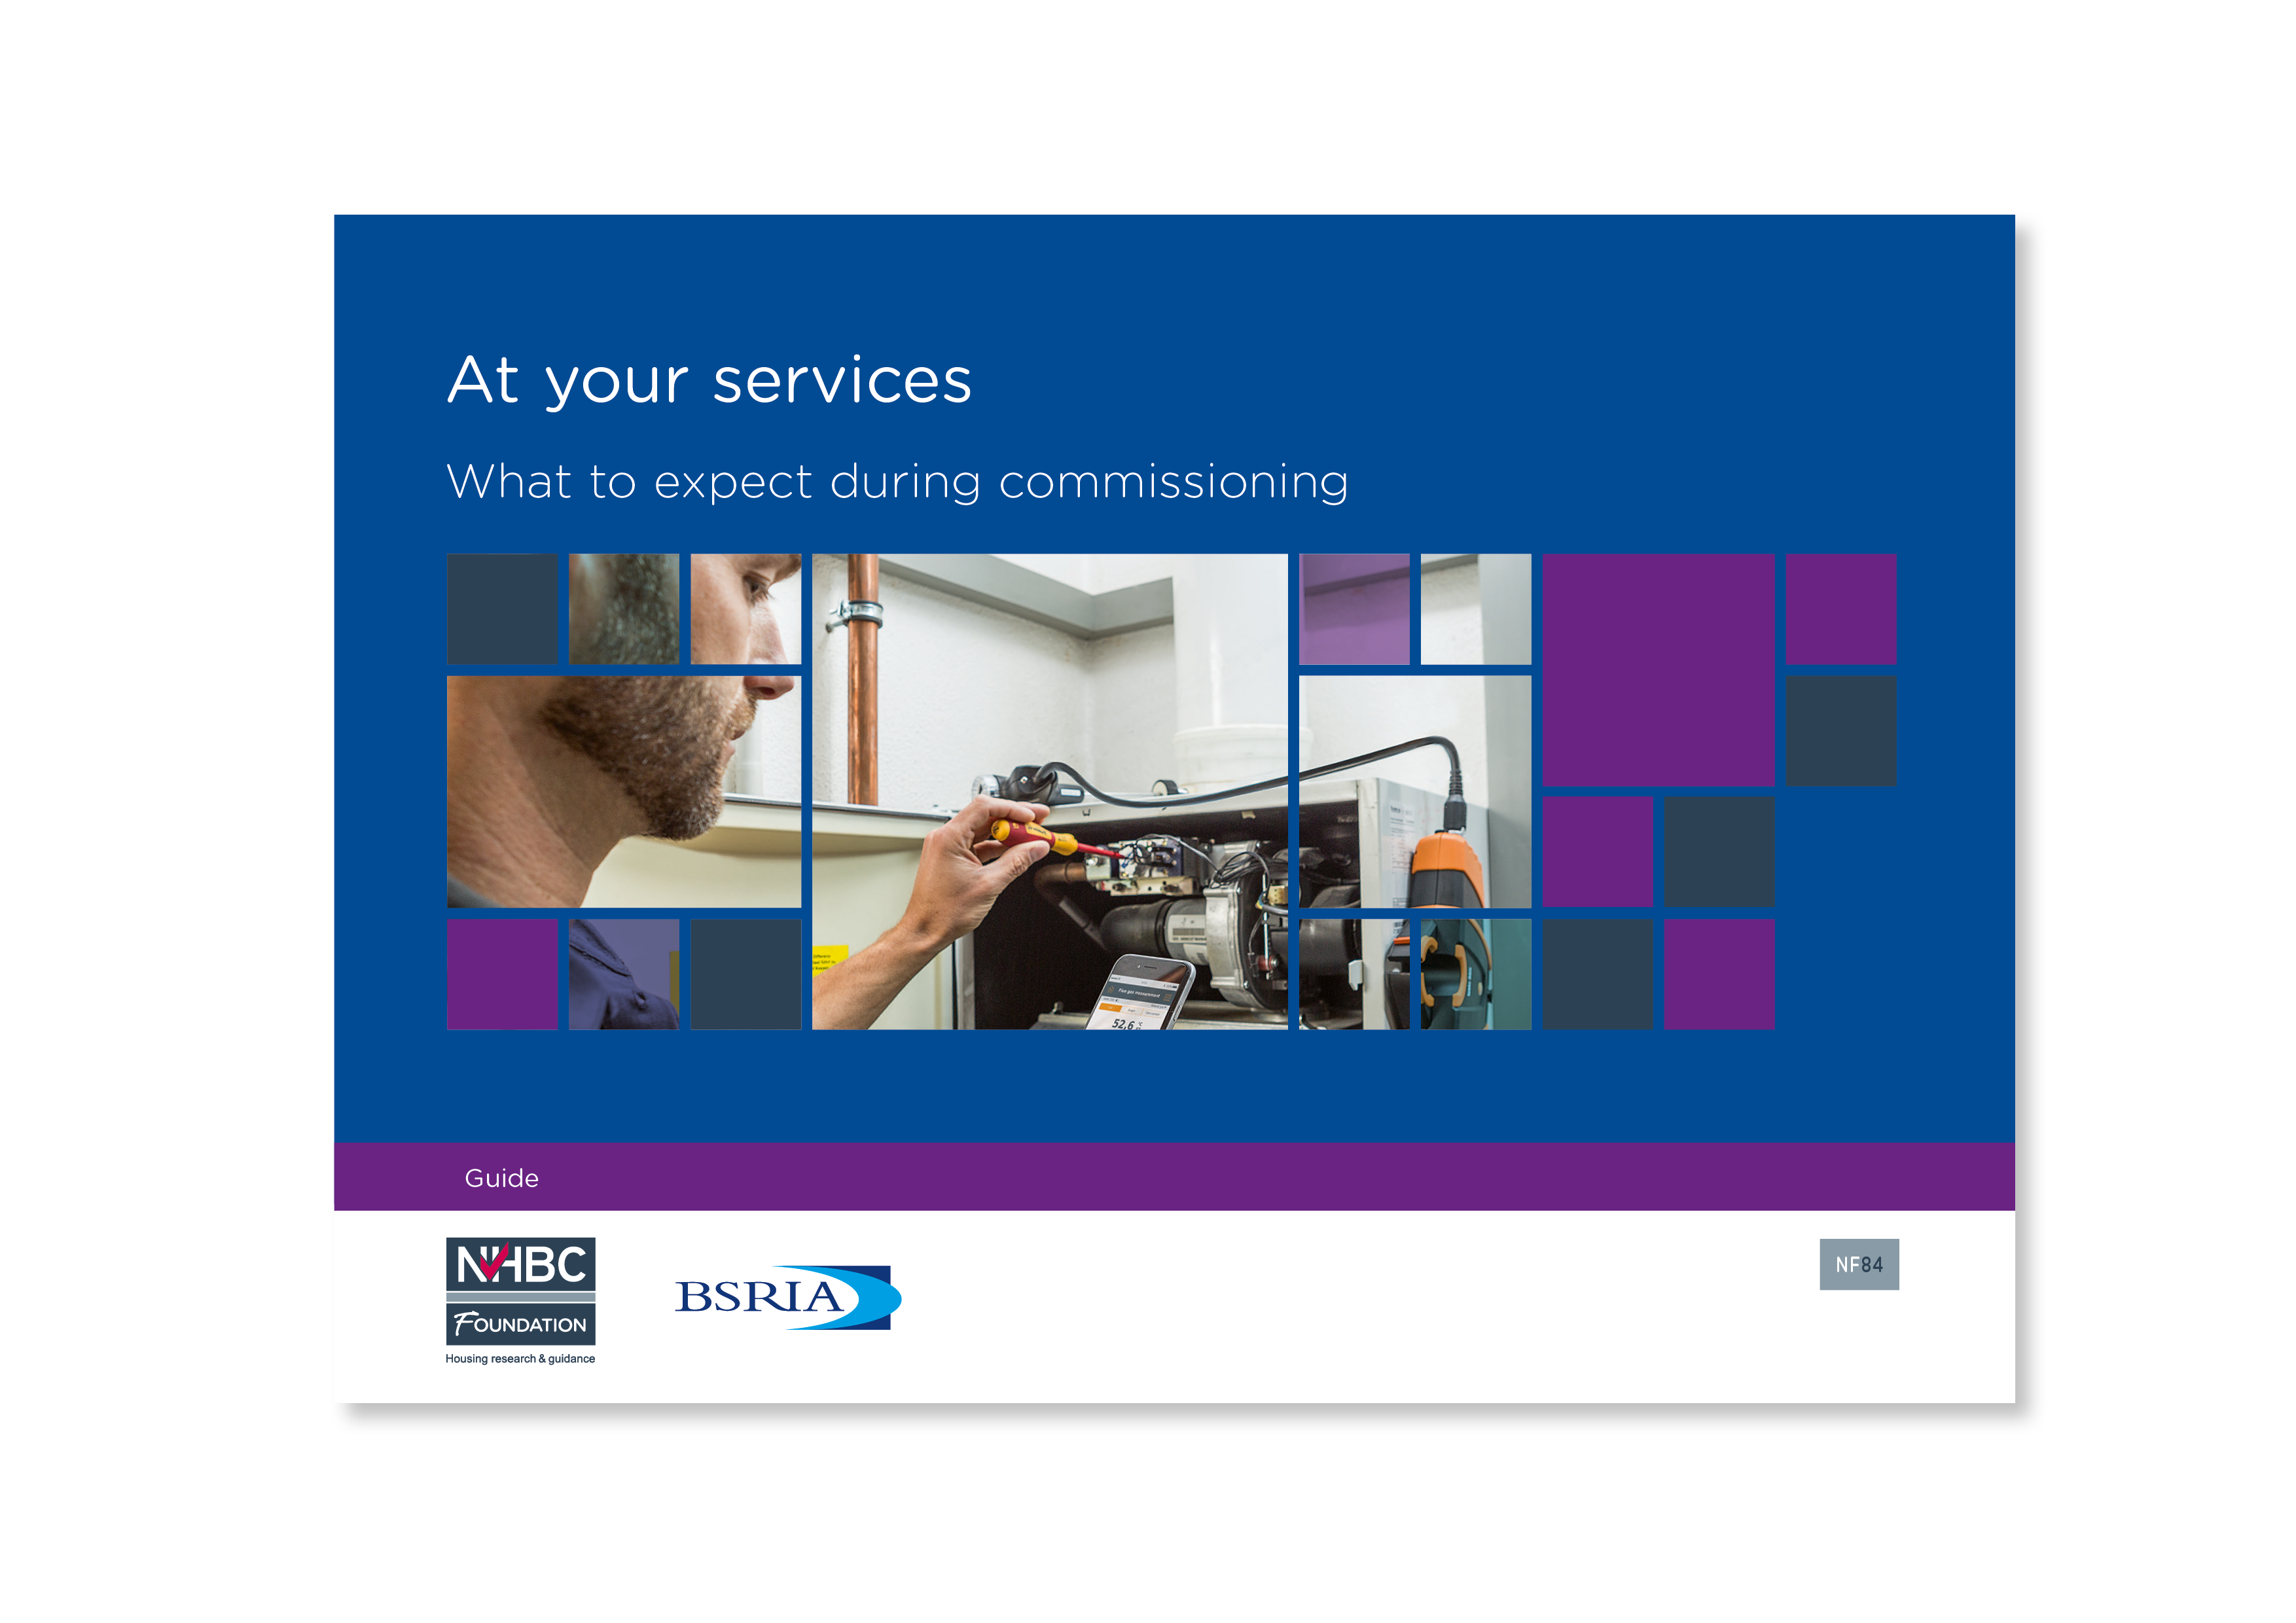 At your services: what to expect during commissioning activities